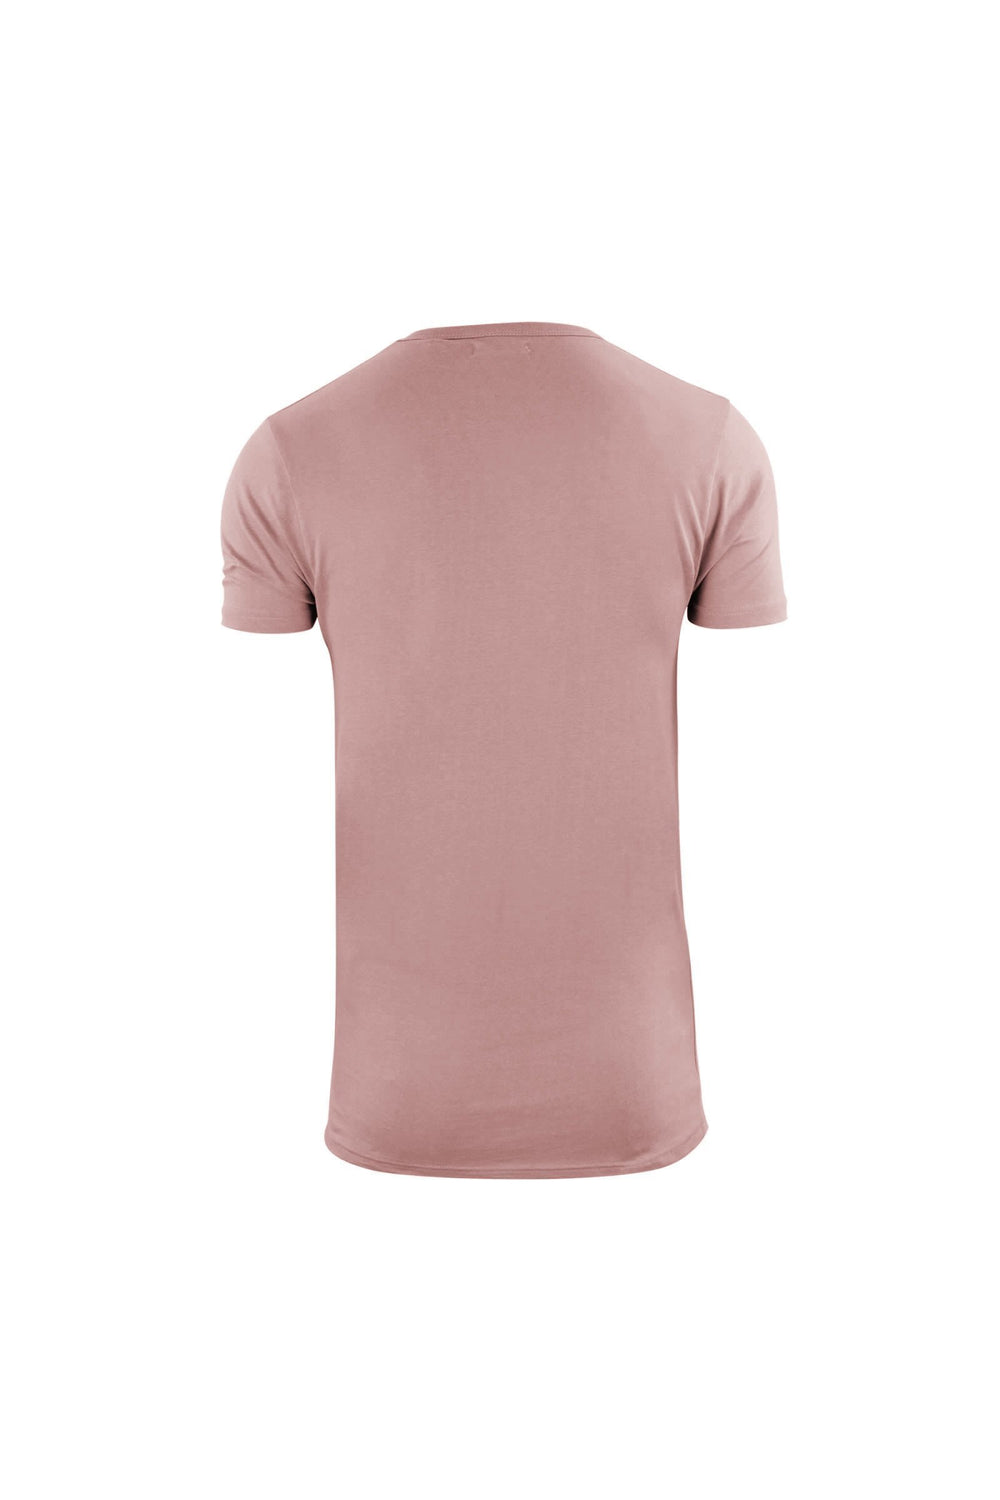 T-Shirts - Longline Zip T-Shirt Dusty Pink